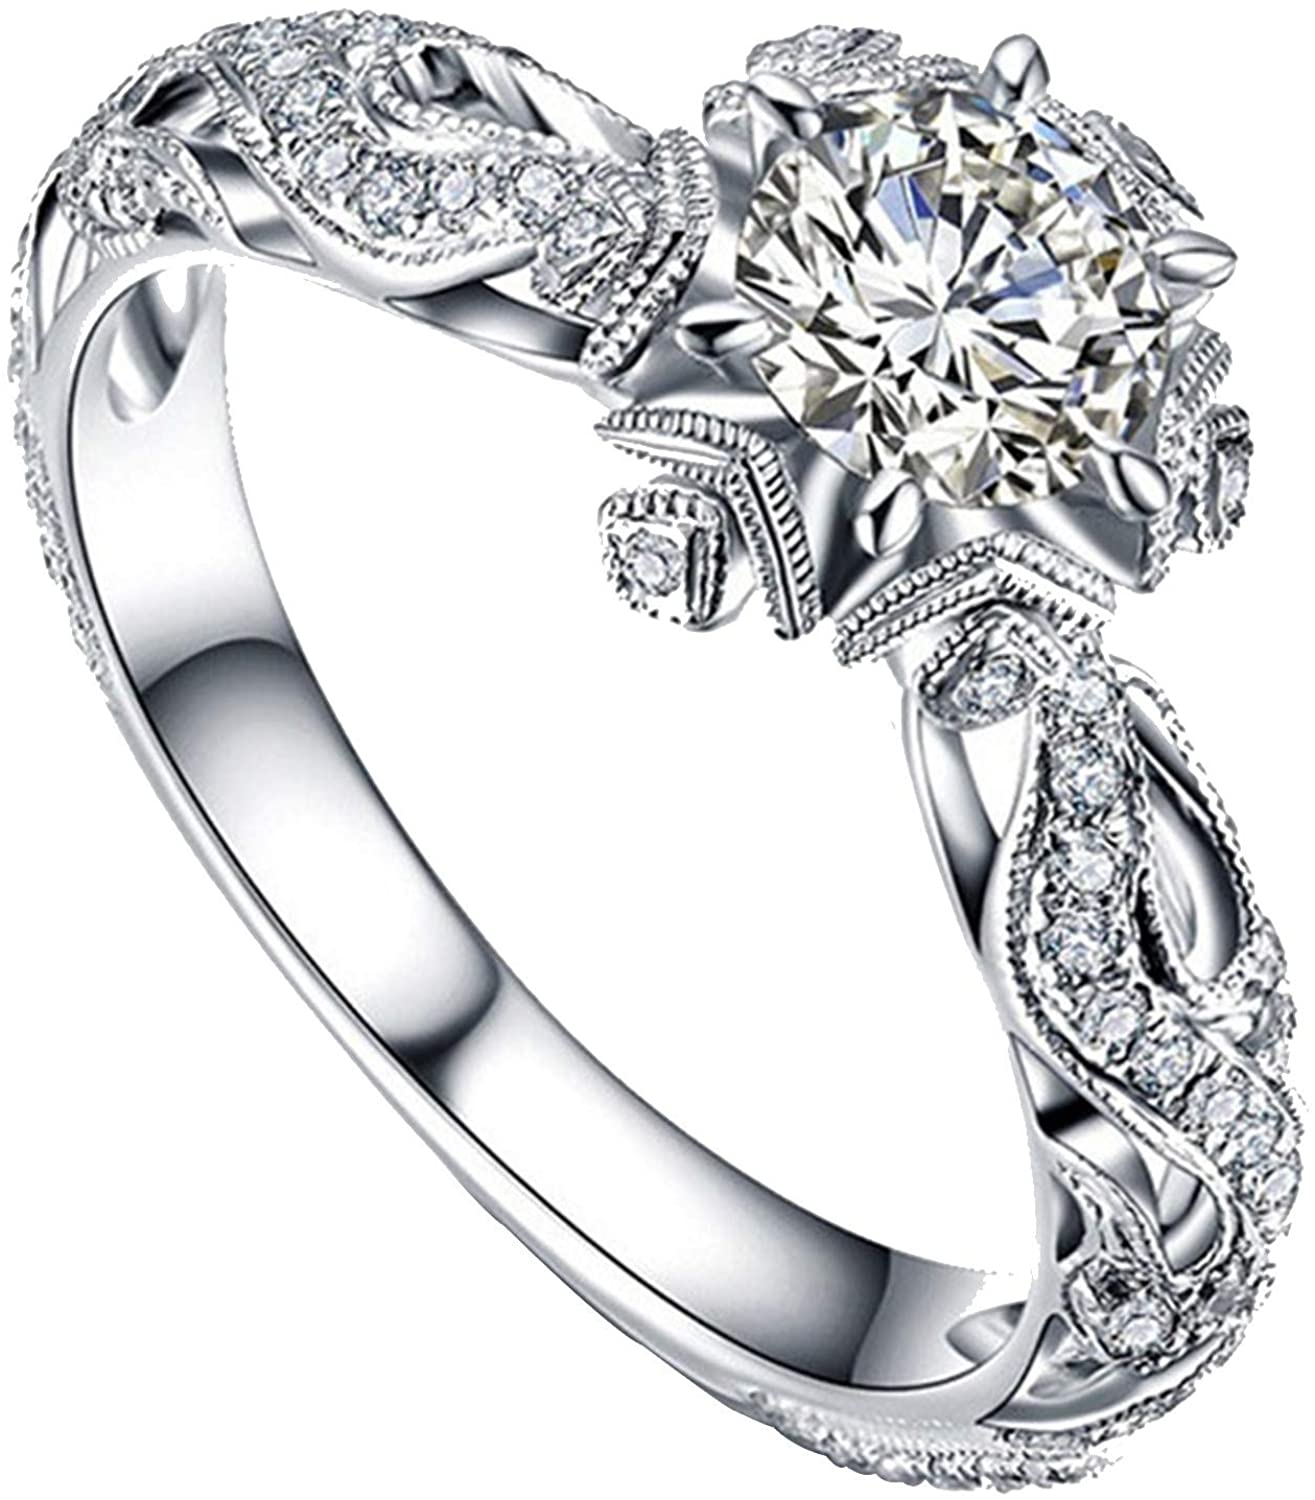 Rings for Women Rose Max 82% OFF Gold Cut Sterling Price reduction Si Round Engagement